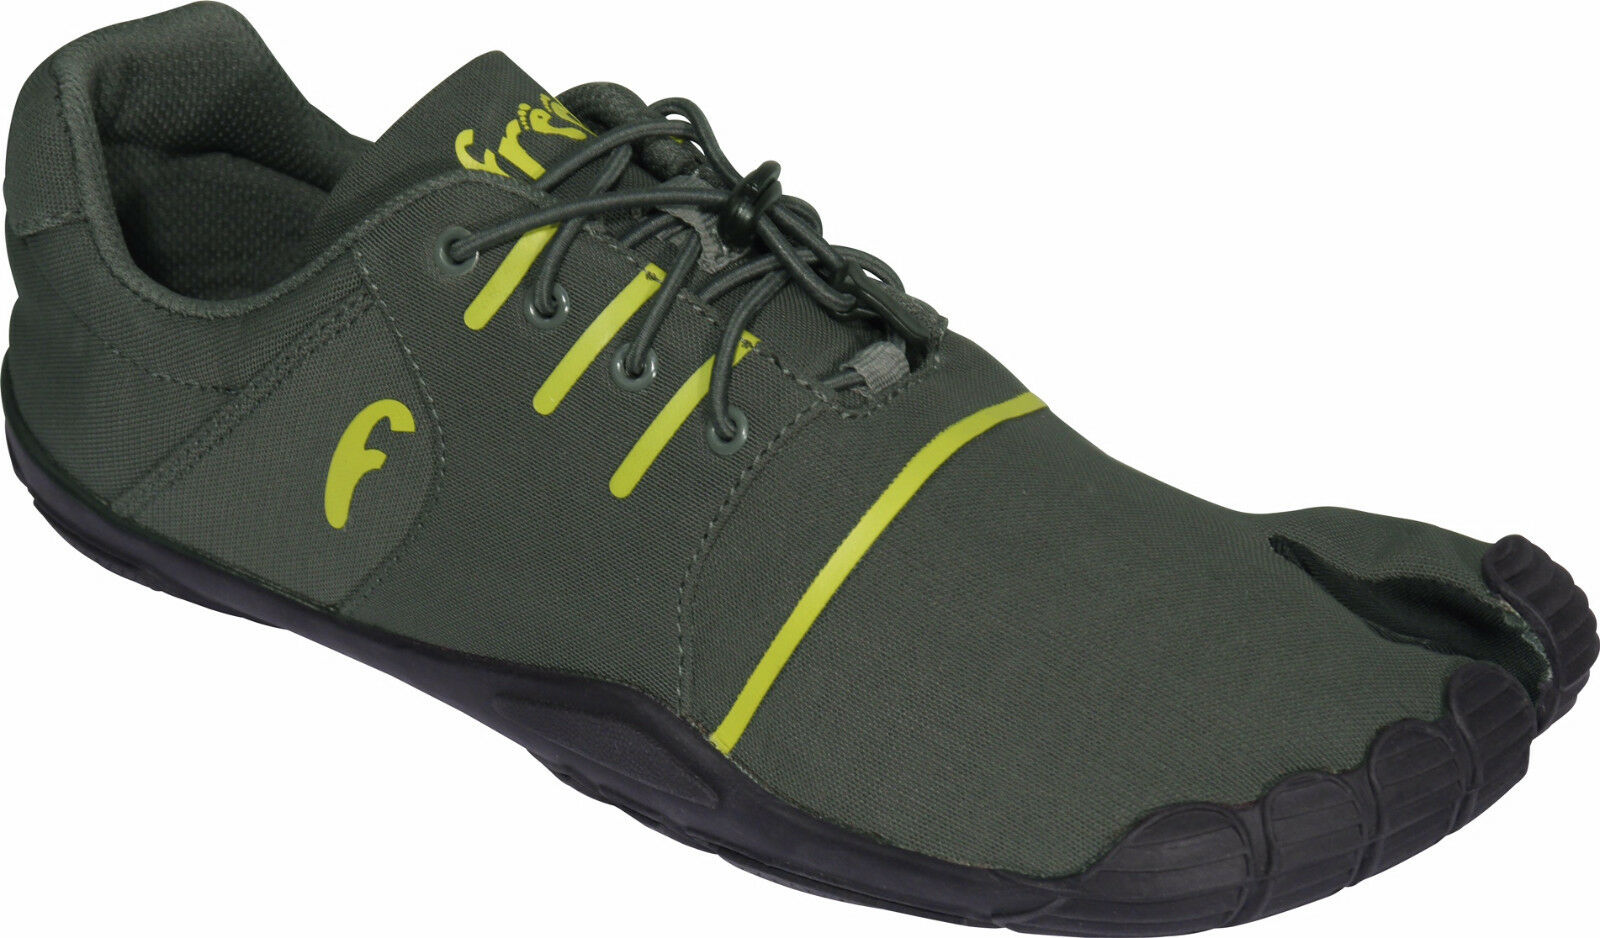 Freet Leap 2, 4+1 barefoot shoes